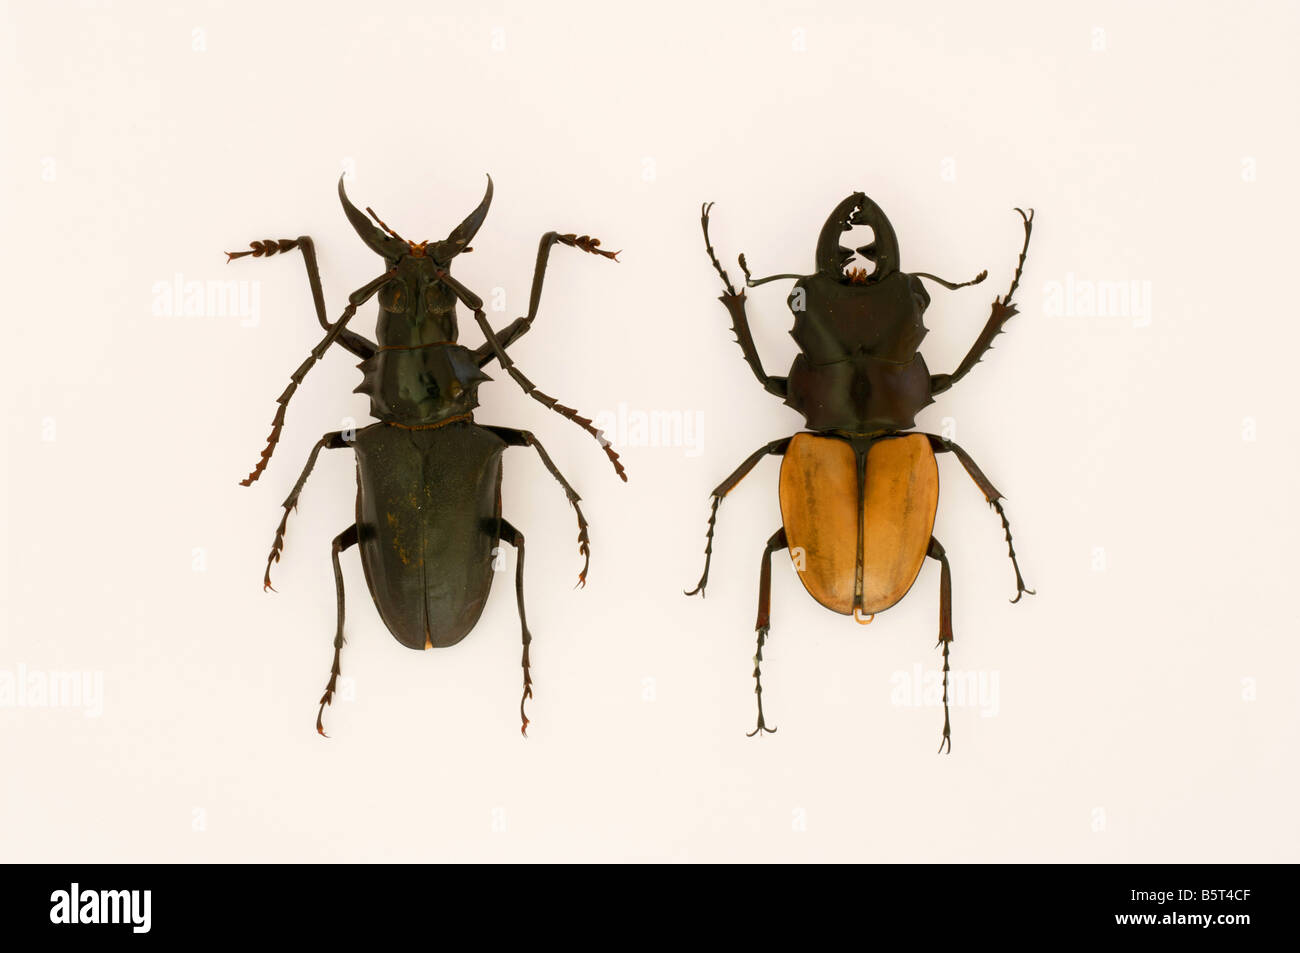 two tropical insects bugs beetles brown black - Stock Image